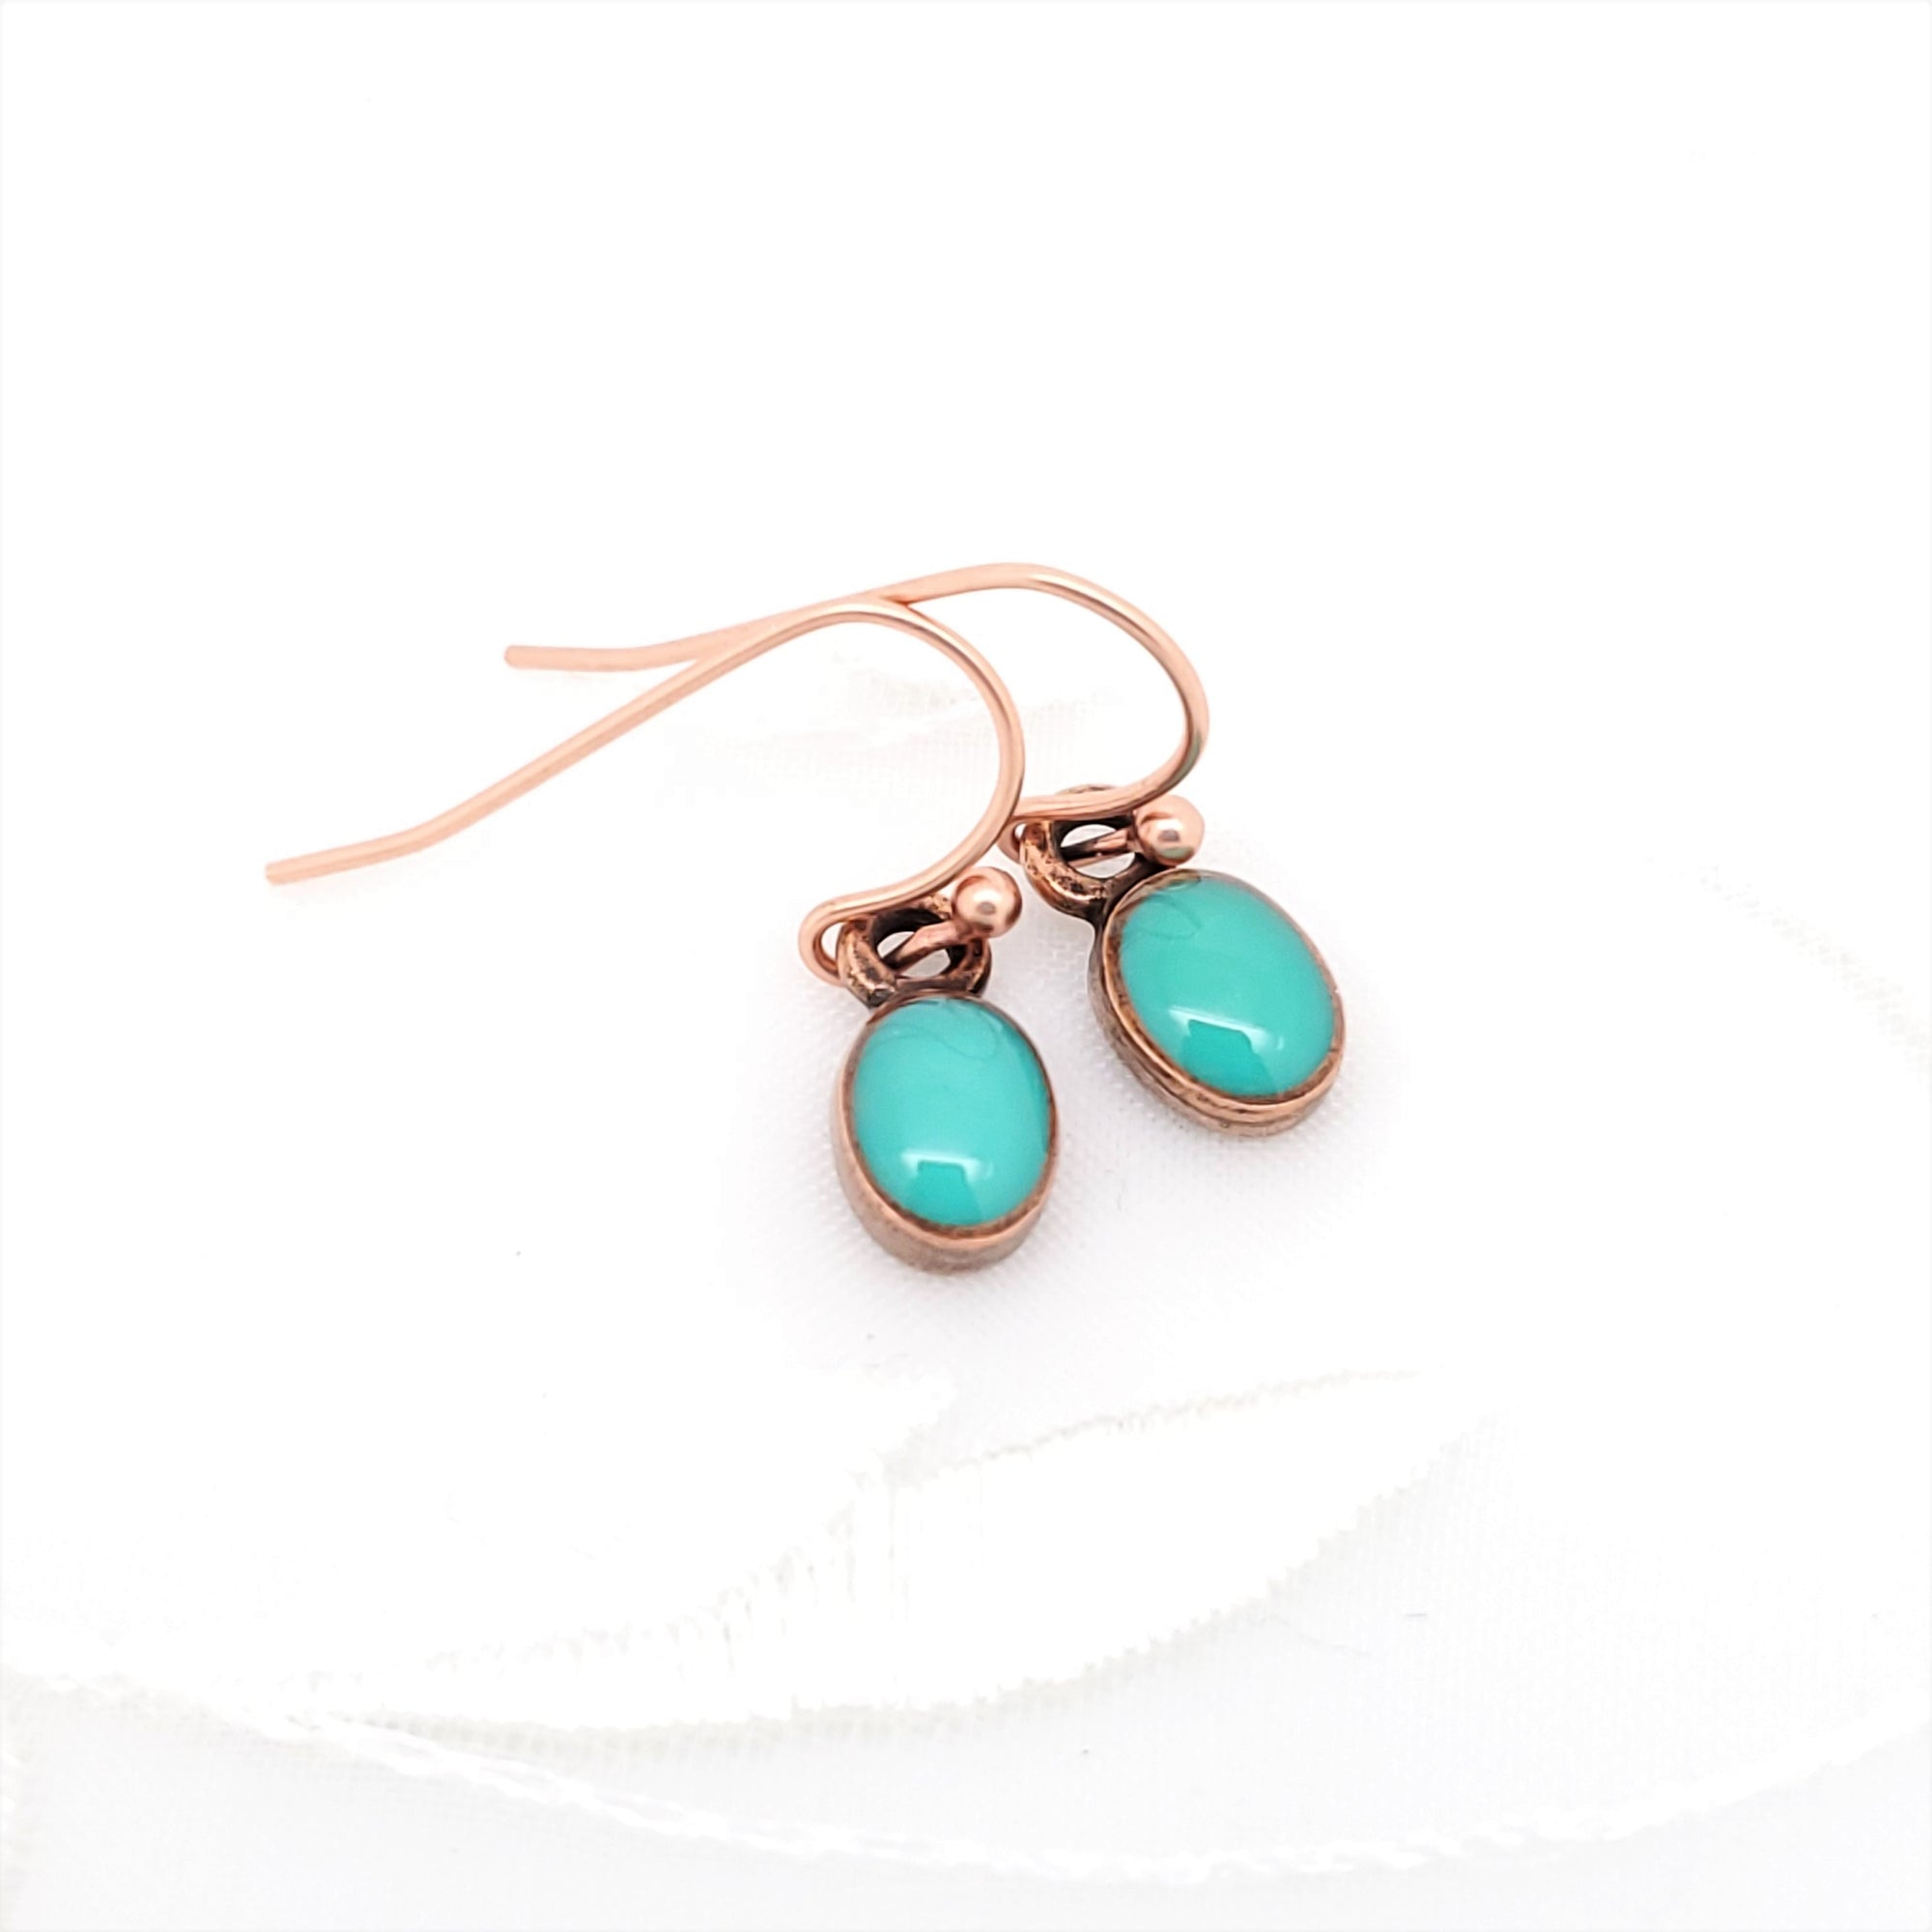 Antique Copper Tiny Oval Earrings with Turquoise Resin